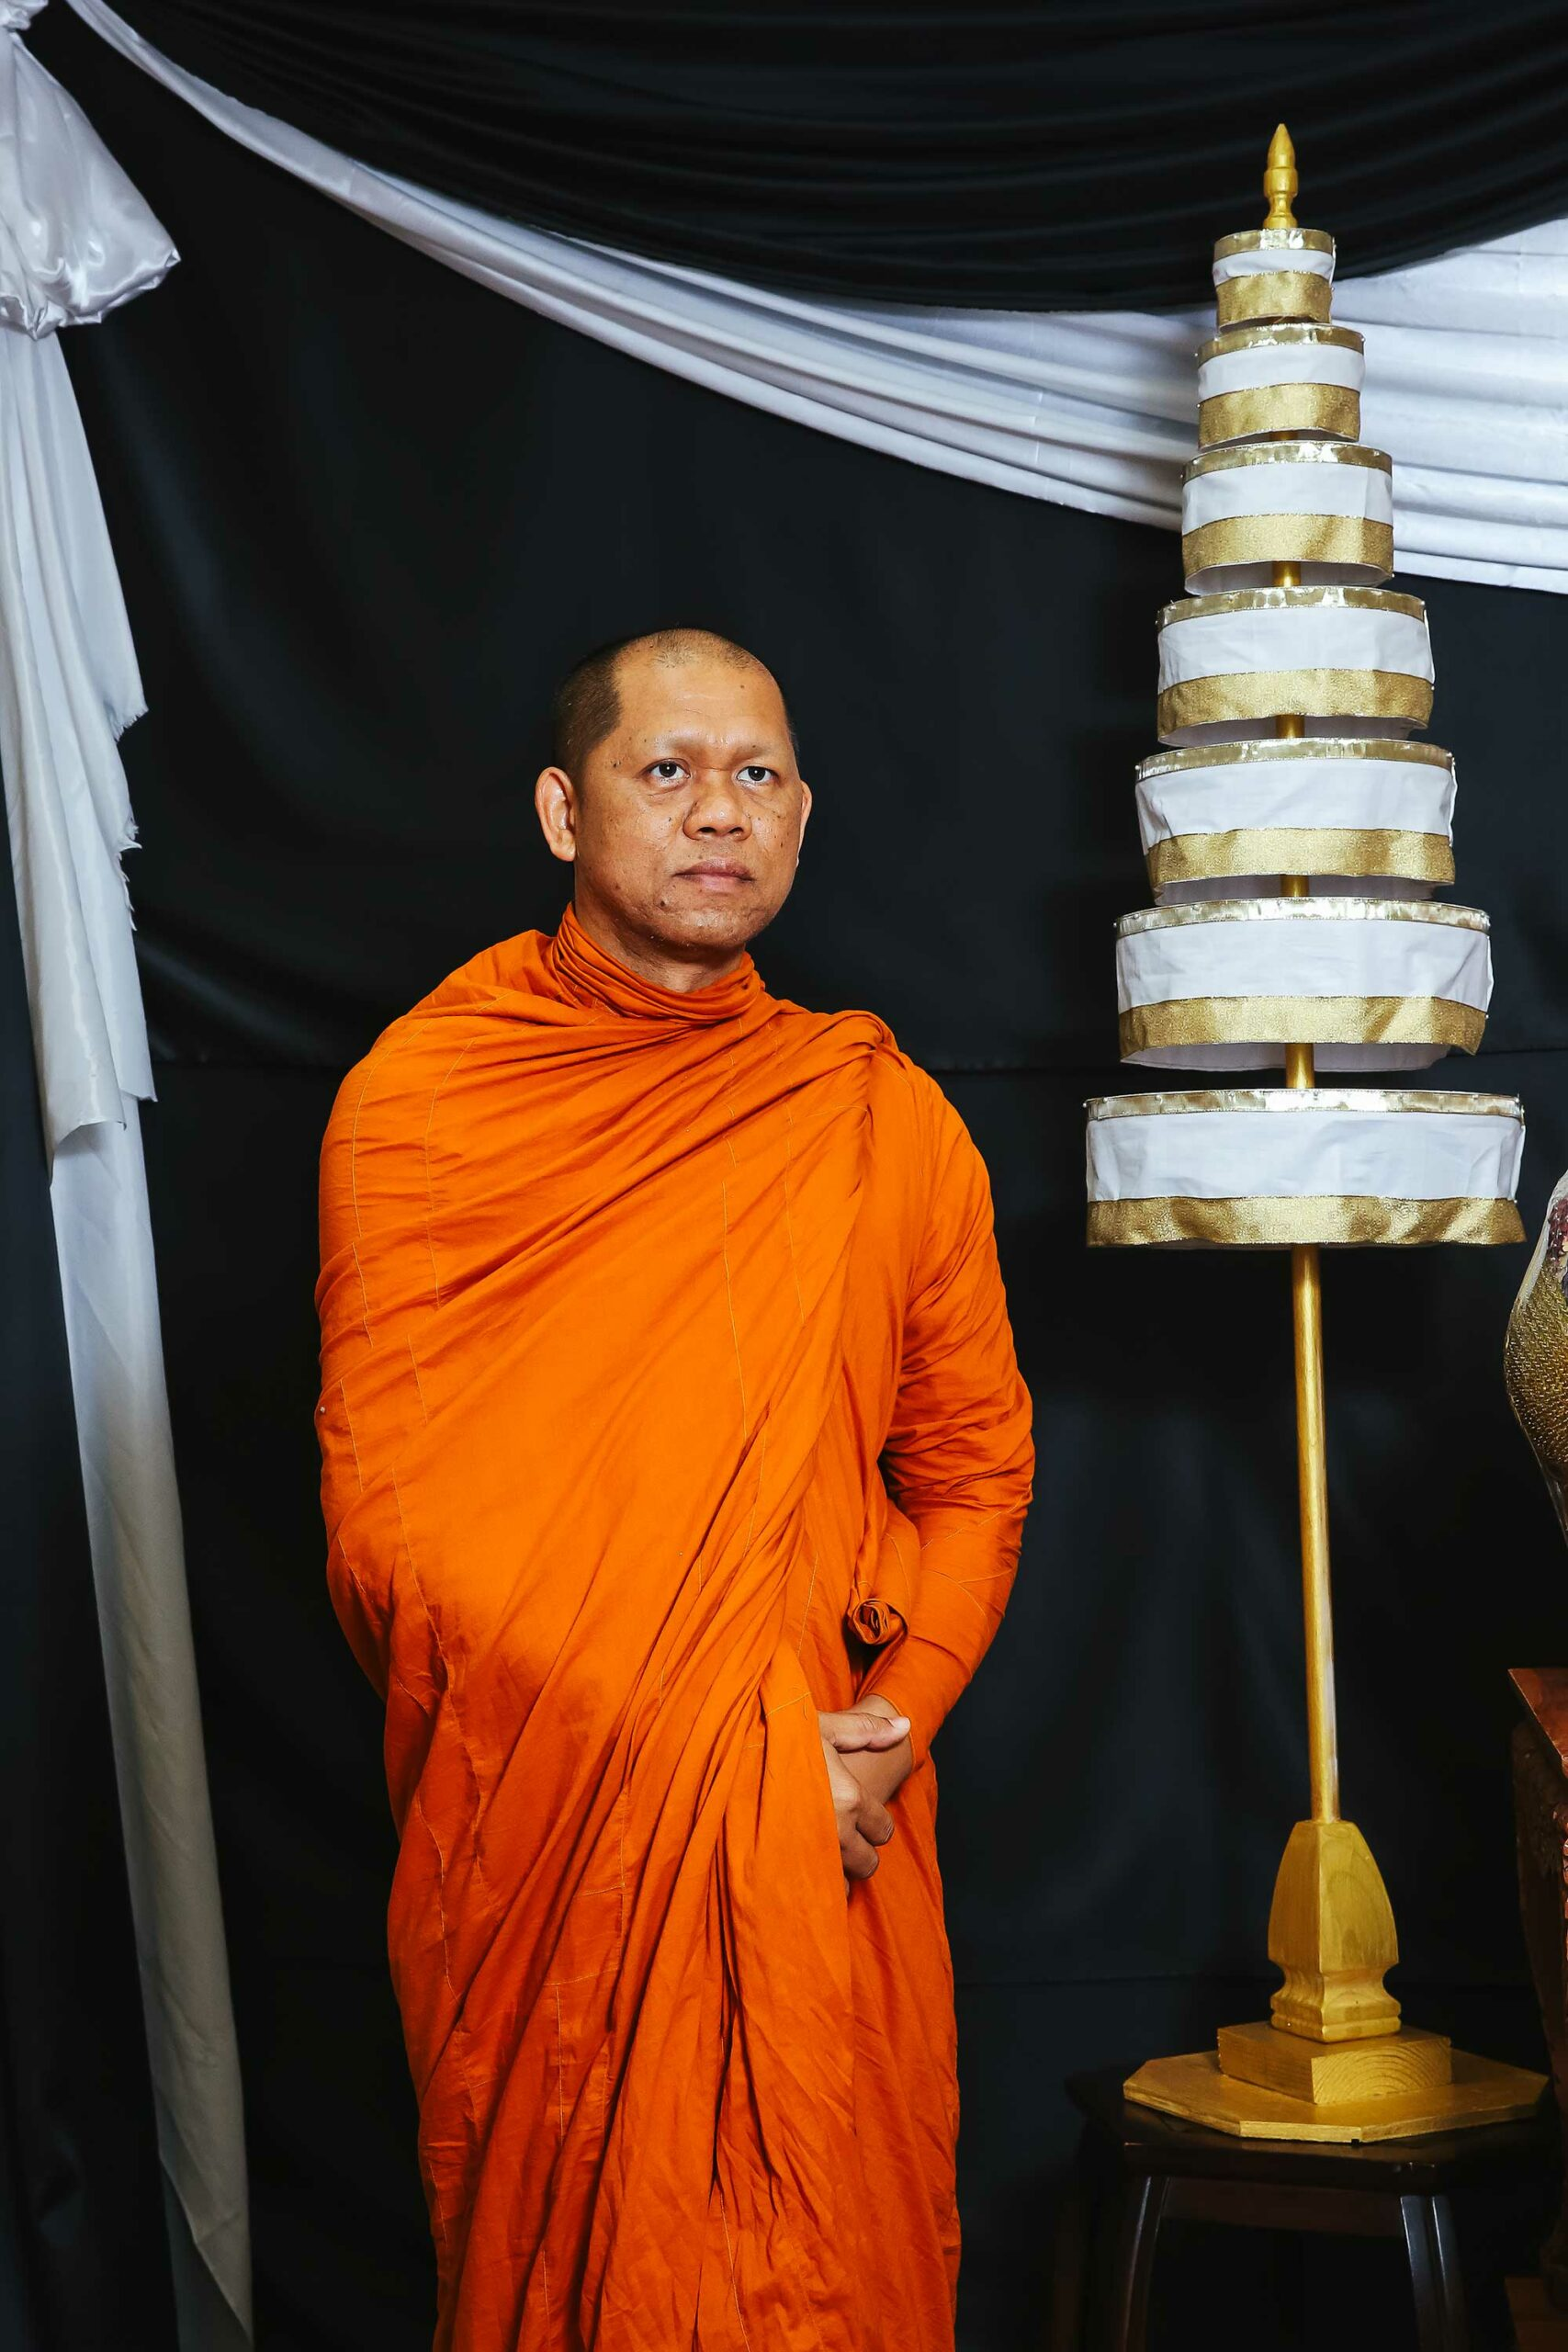 For These Buddhist Monks on the Morning Rice Run, Food is a Sacred Contract